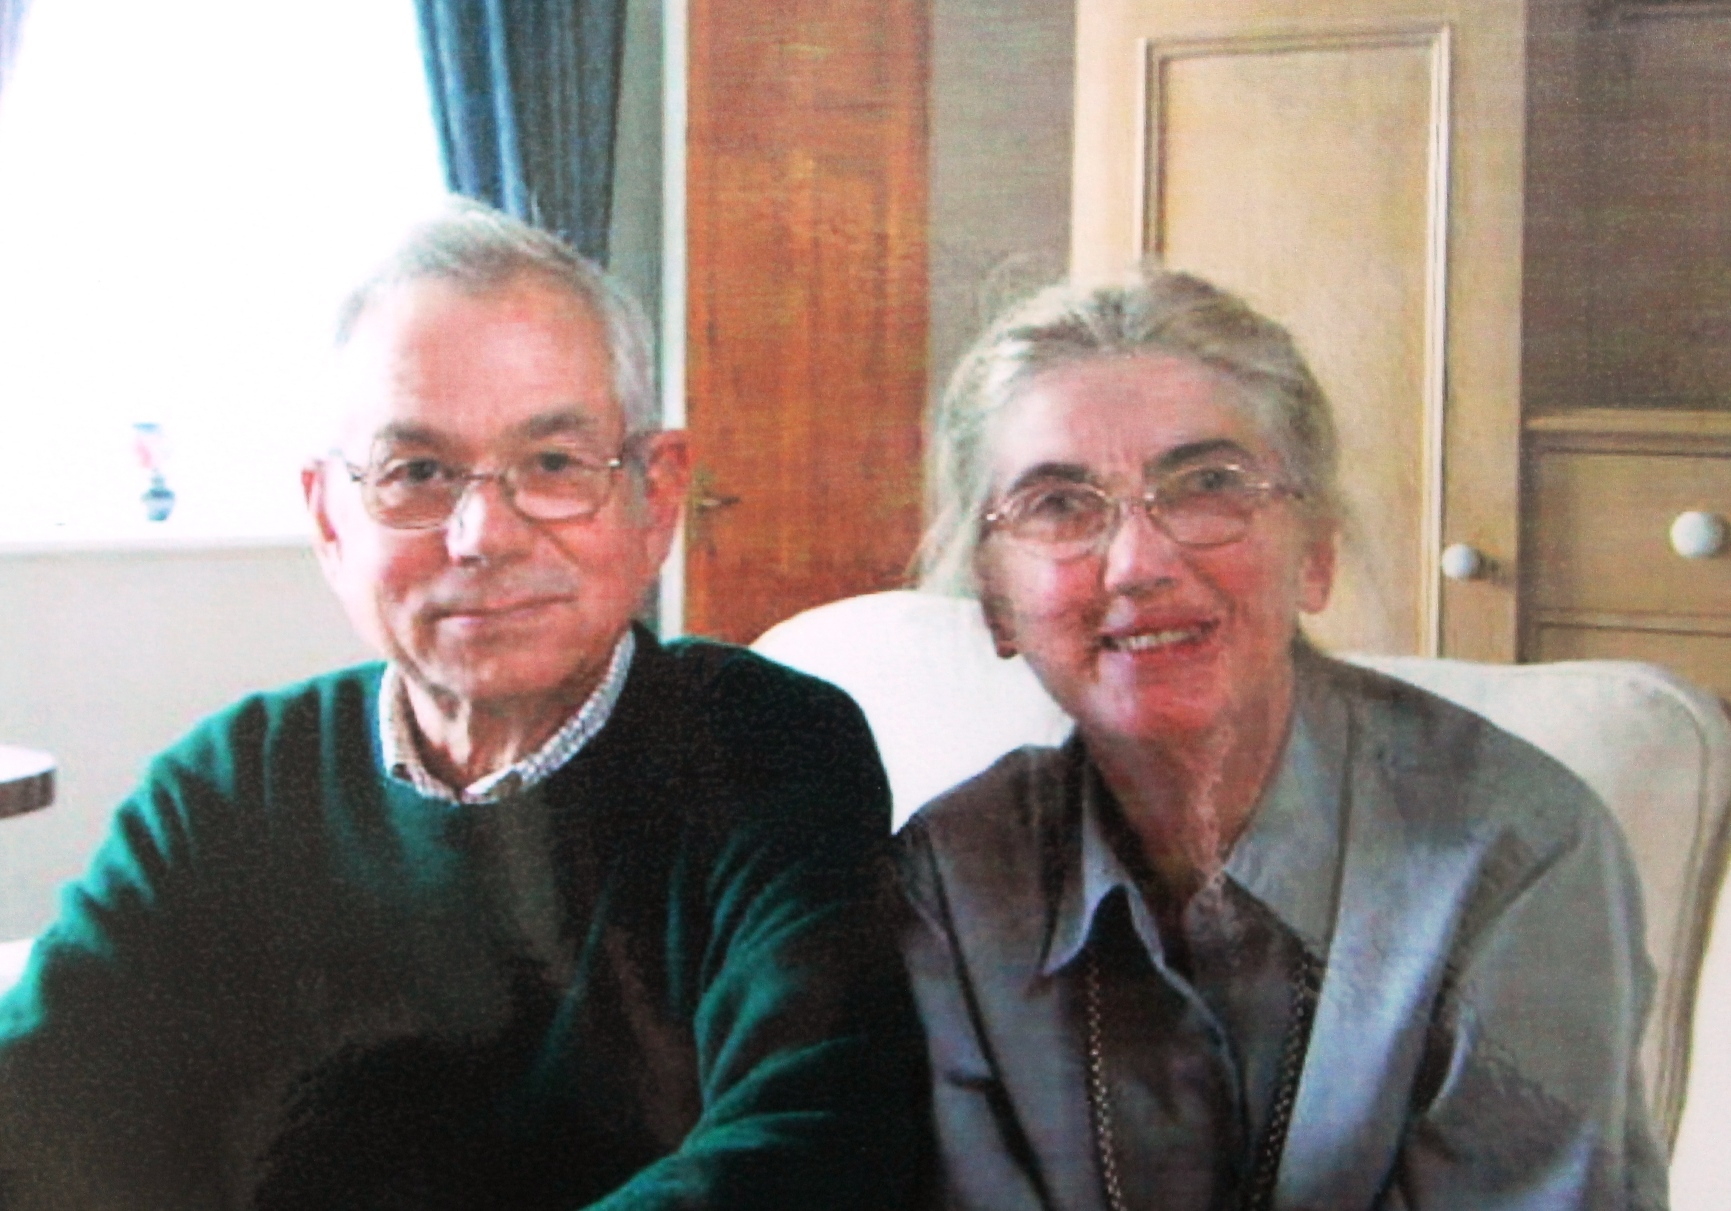 Rex Cooper from Tarset with his wife Pat, who died in January 2018.